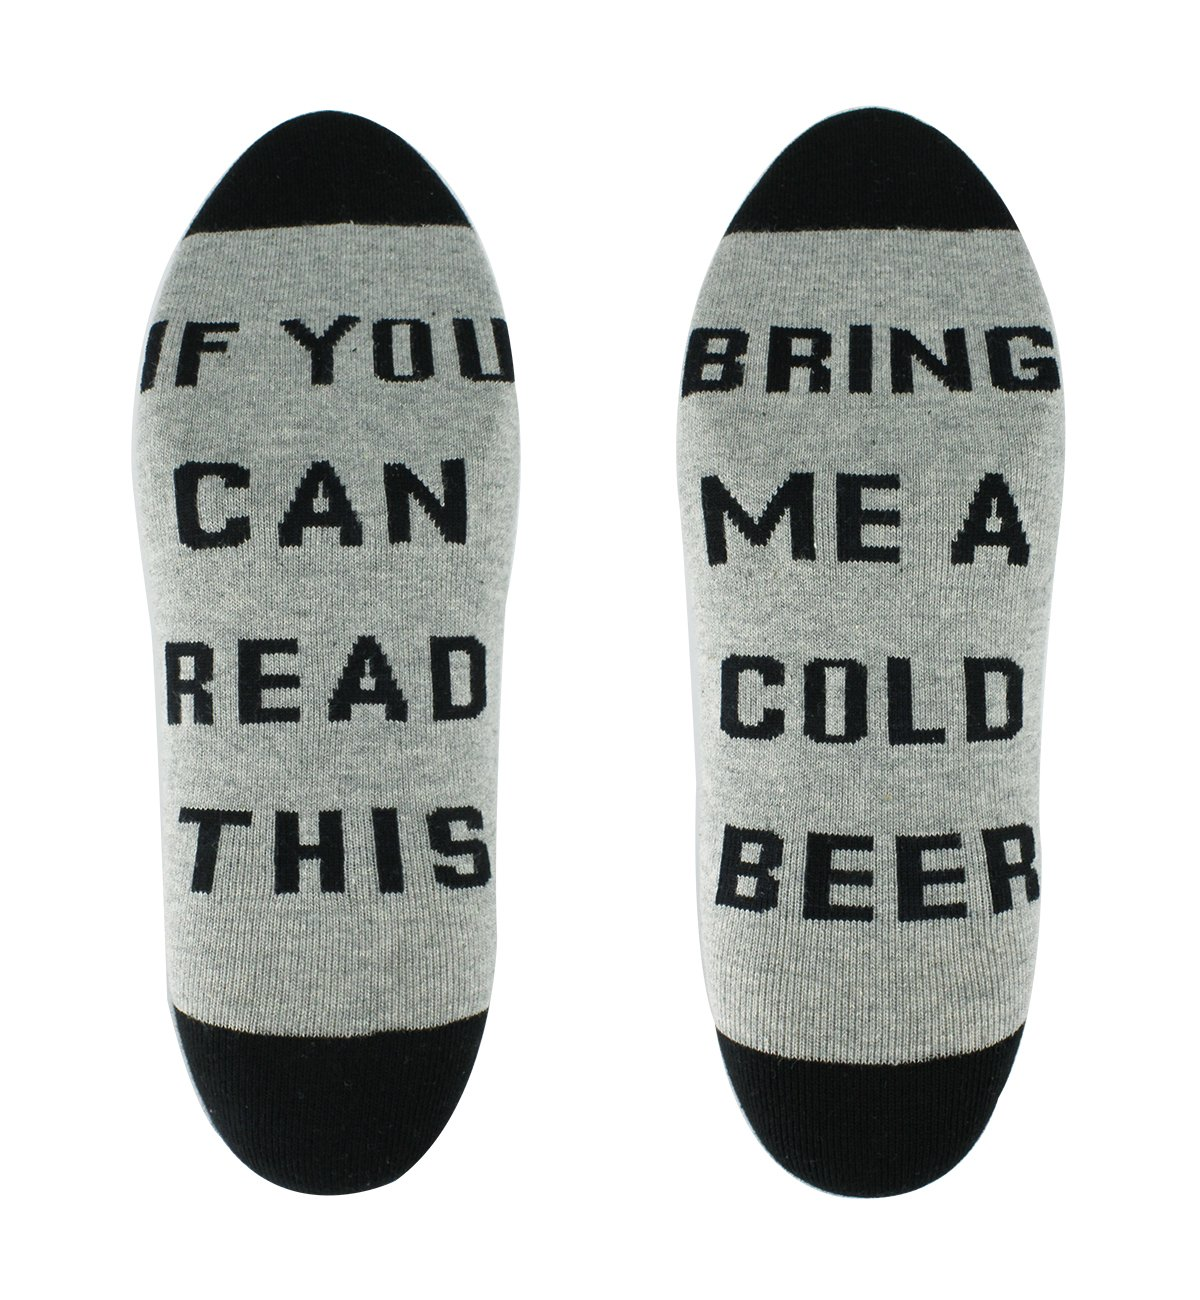 Happypop If You Can Read This Bring Me Beer Funny Socks Novelty Crew Combed Cotton Socks Christmas Birthday housewarming Gift for Men